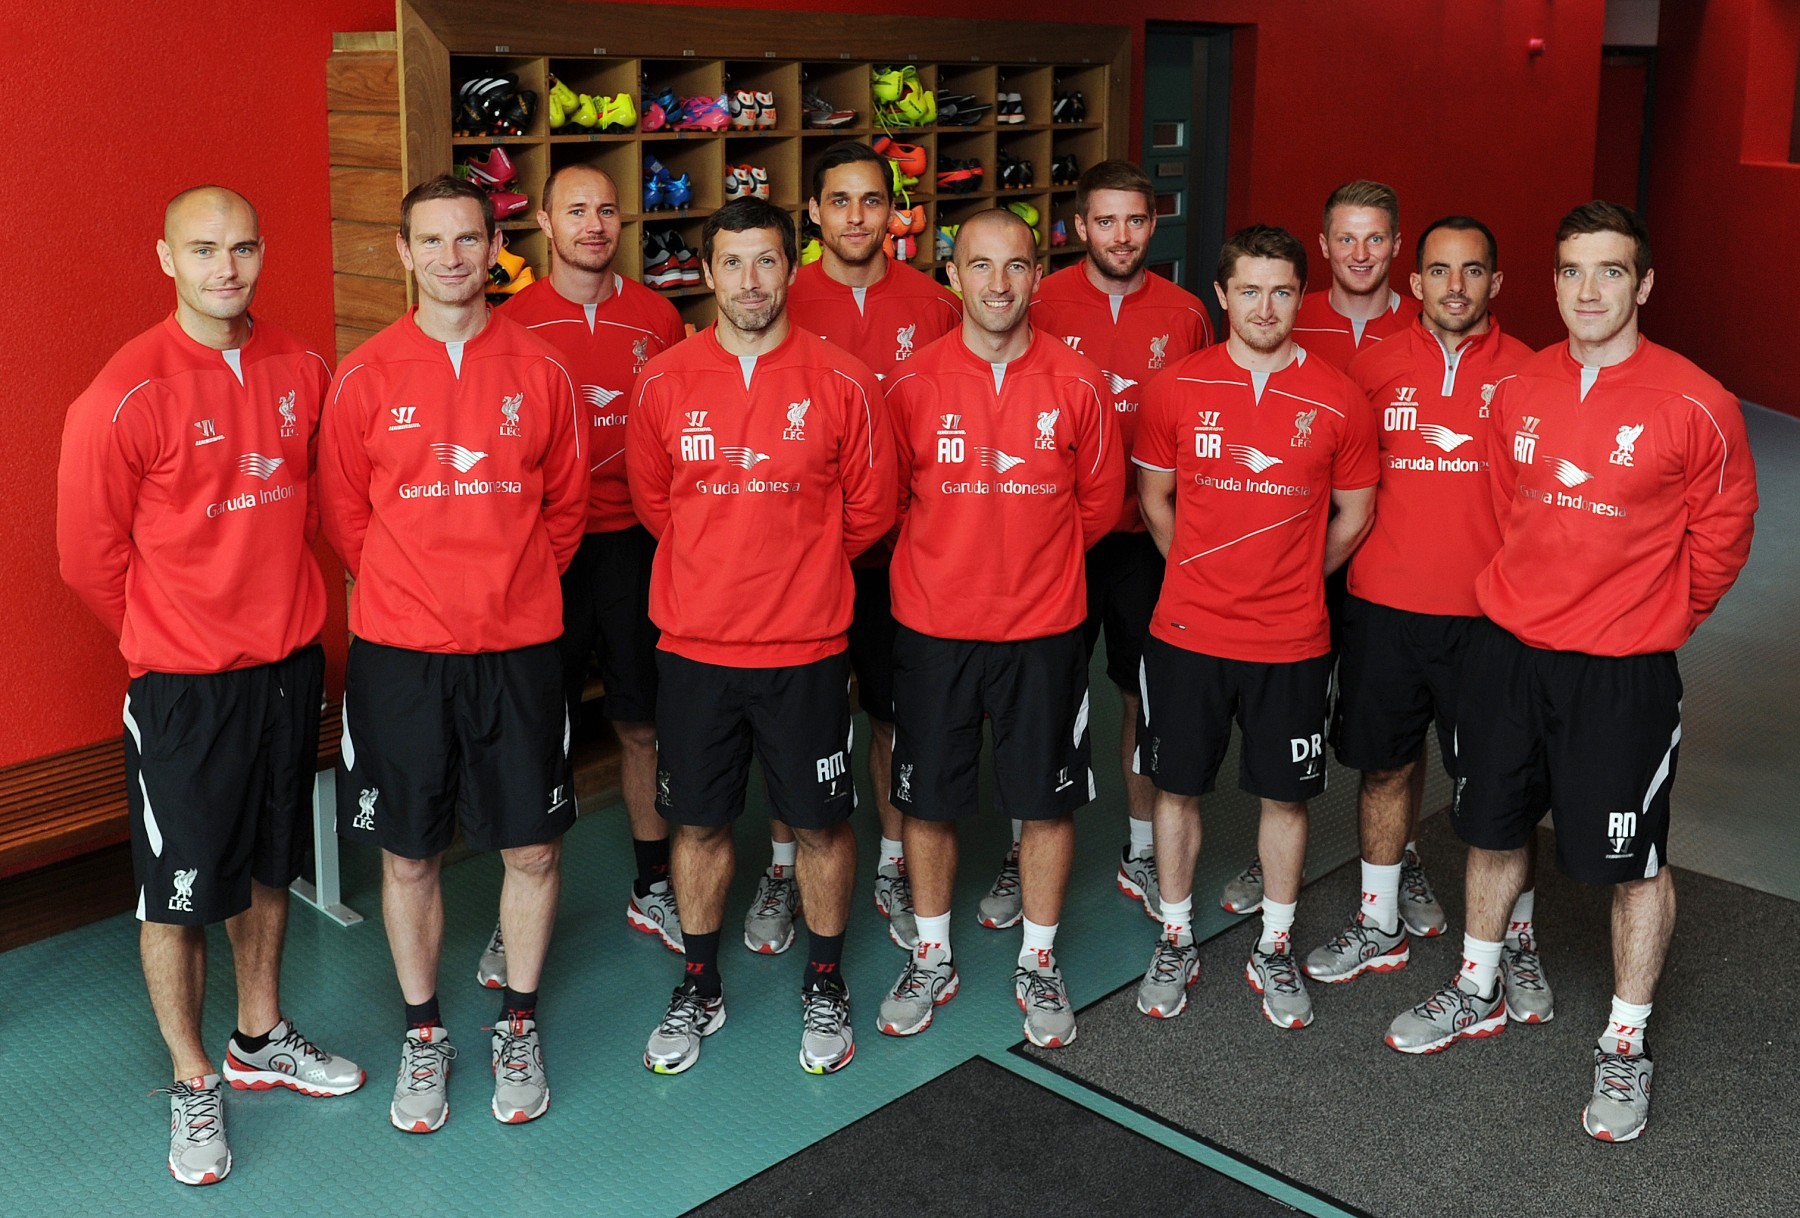 From left James Morton, Barry Drust, Jordan Milsom, Ryland Morgans, Tom Brownlee, Andy O'Boyle, Patrick Orme, Dave Rydings, Liam Anderson, Olly Morgan and Rob Naughton